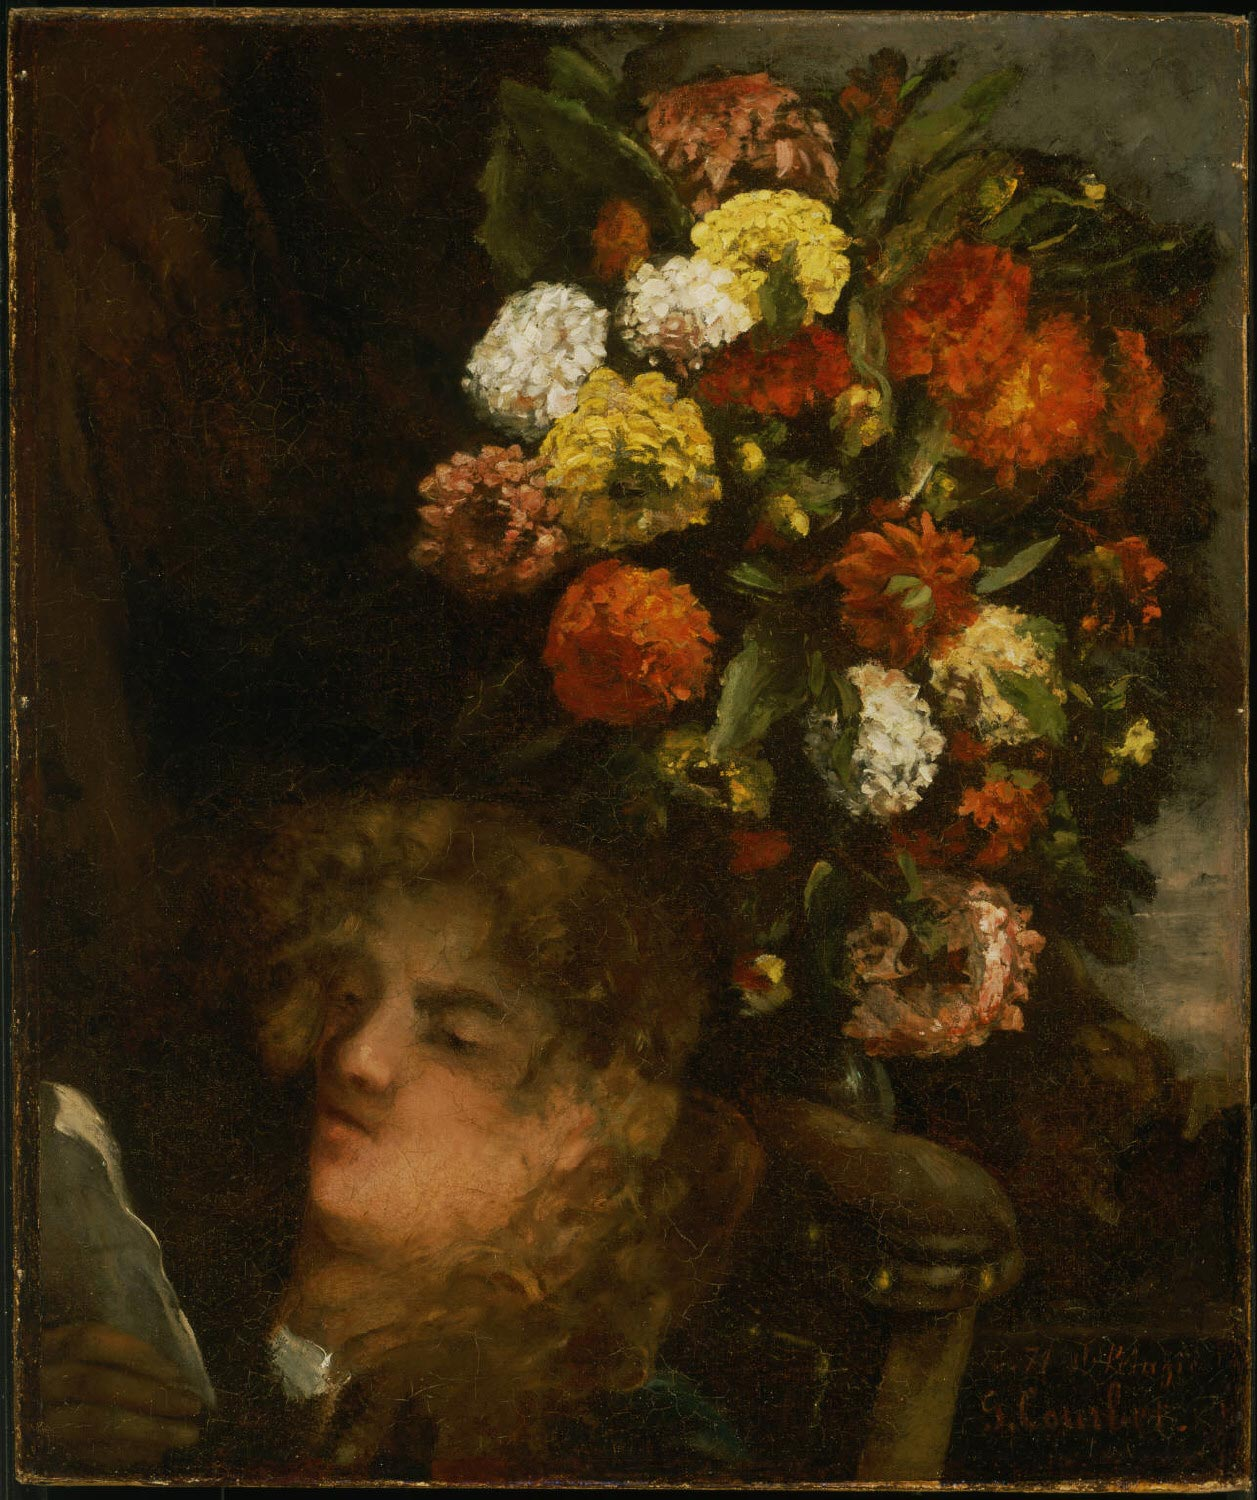 Head of a Woman and Flowers